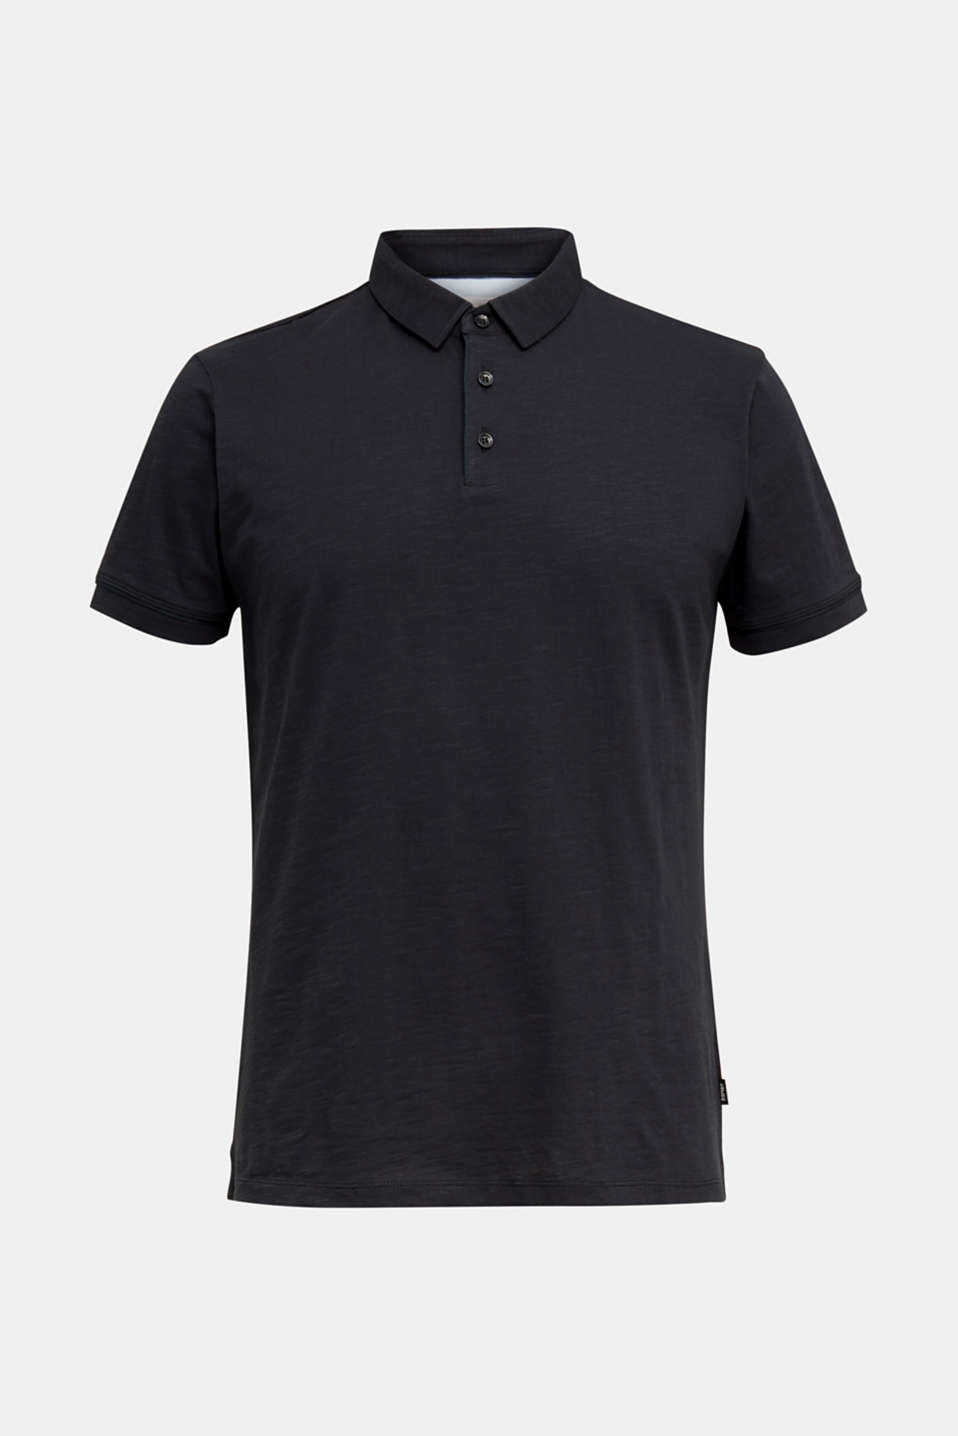 Slub jersey polo shirt, 100% cotton, BLACK, detail image number 7